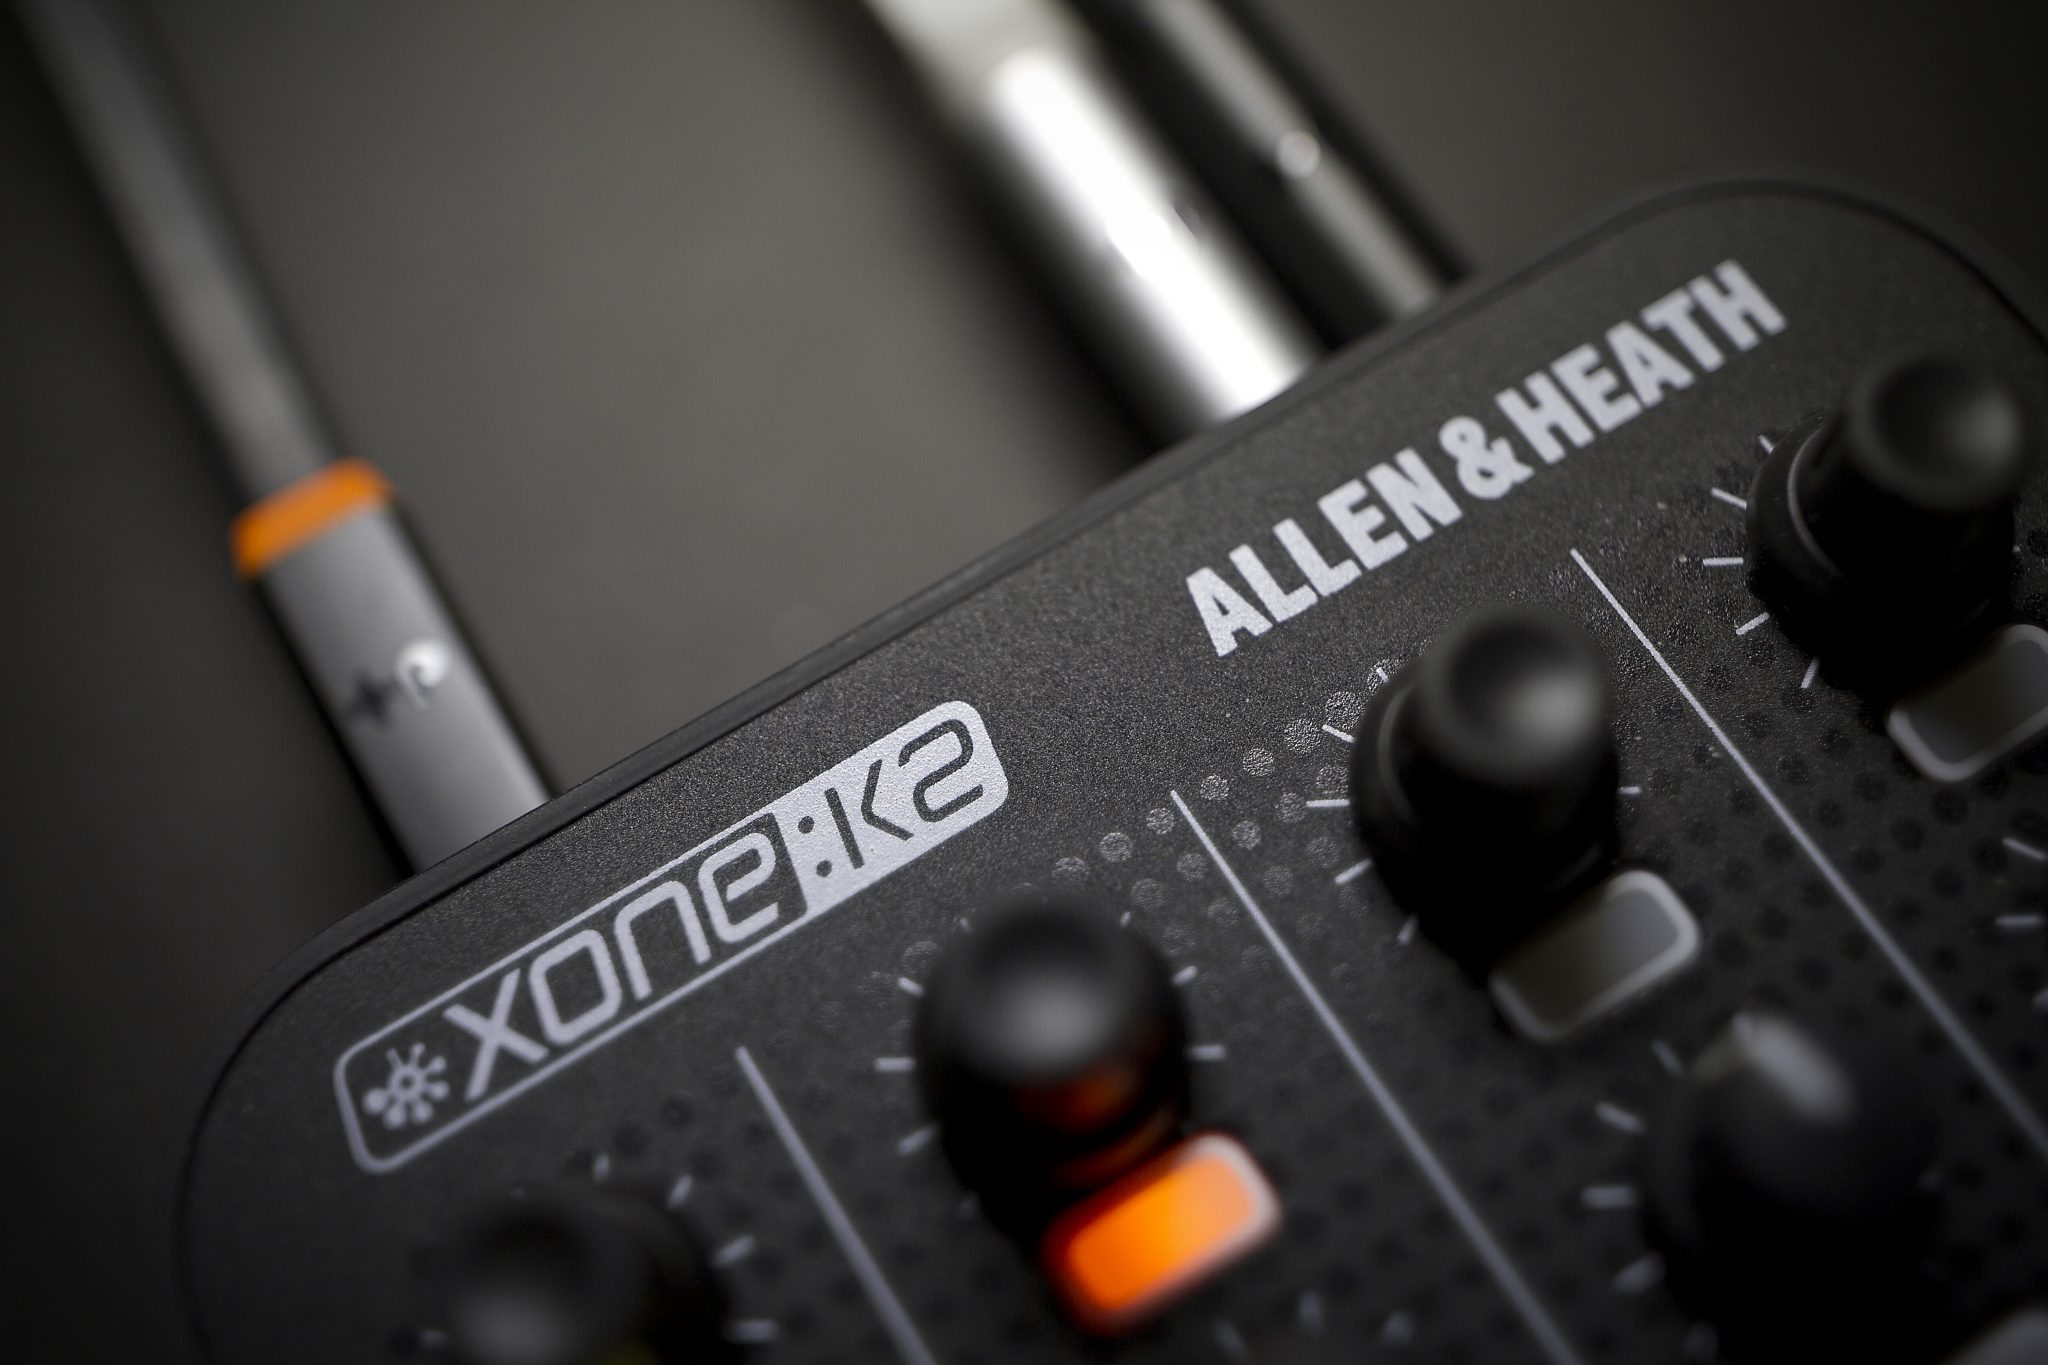 Allen and heath xone k2